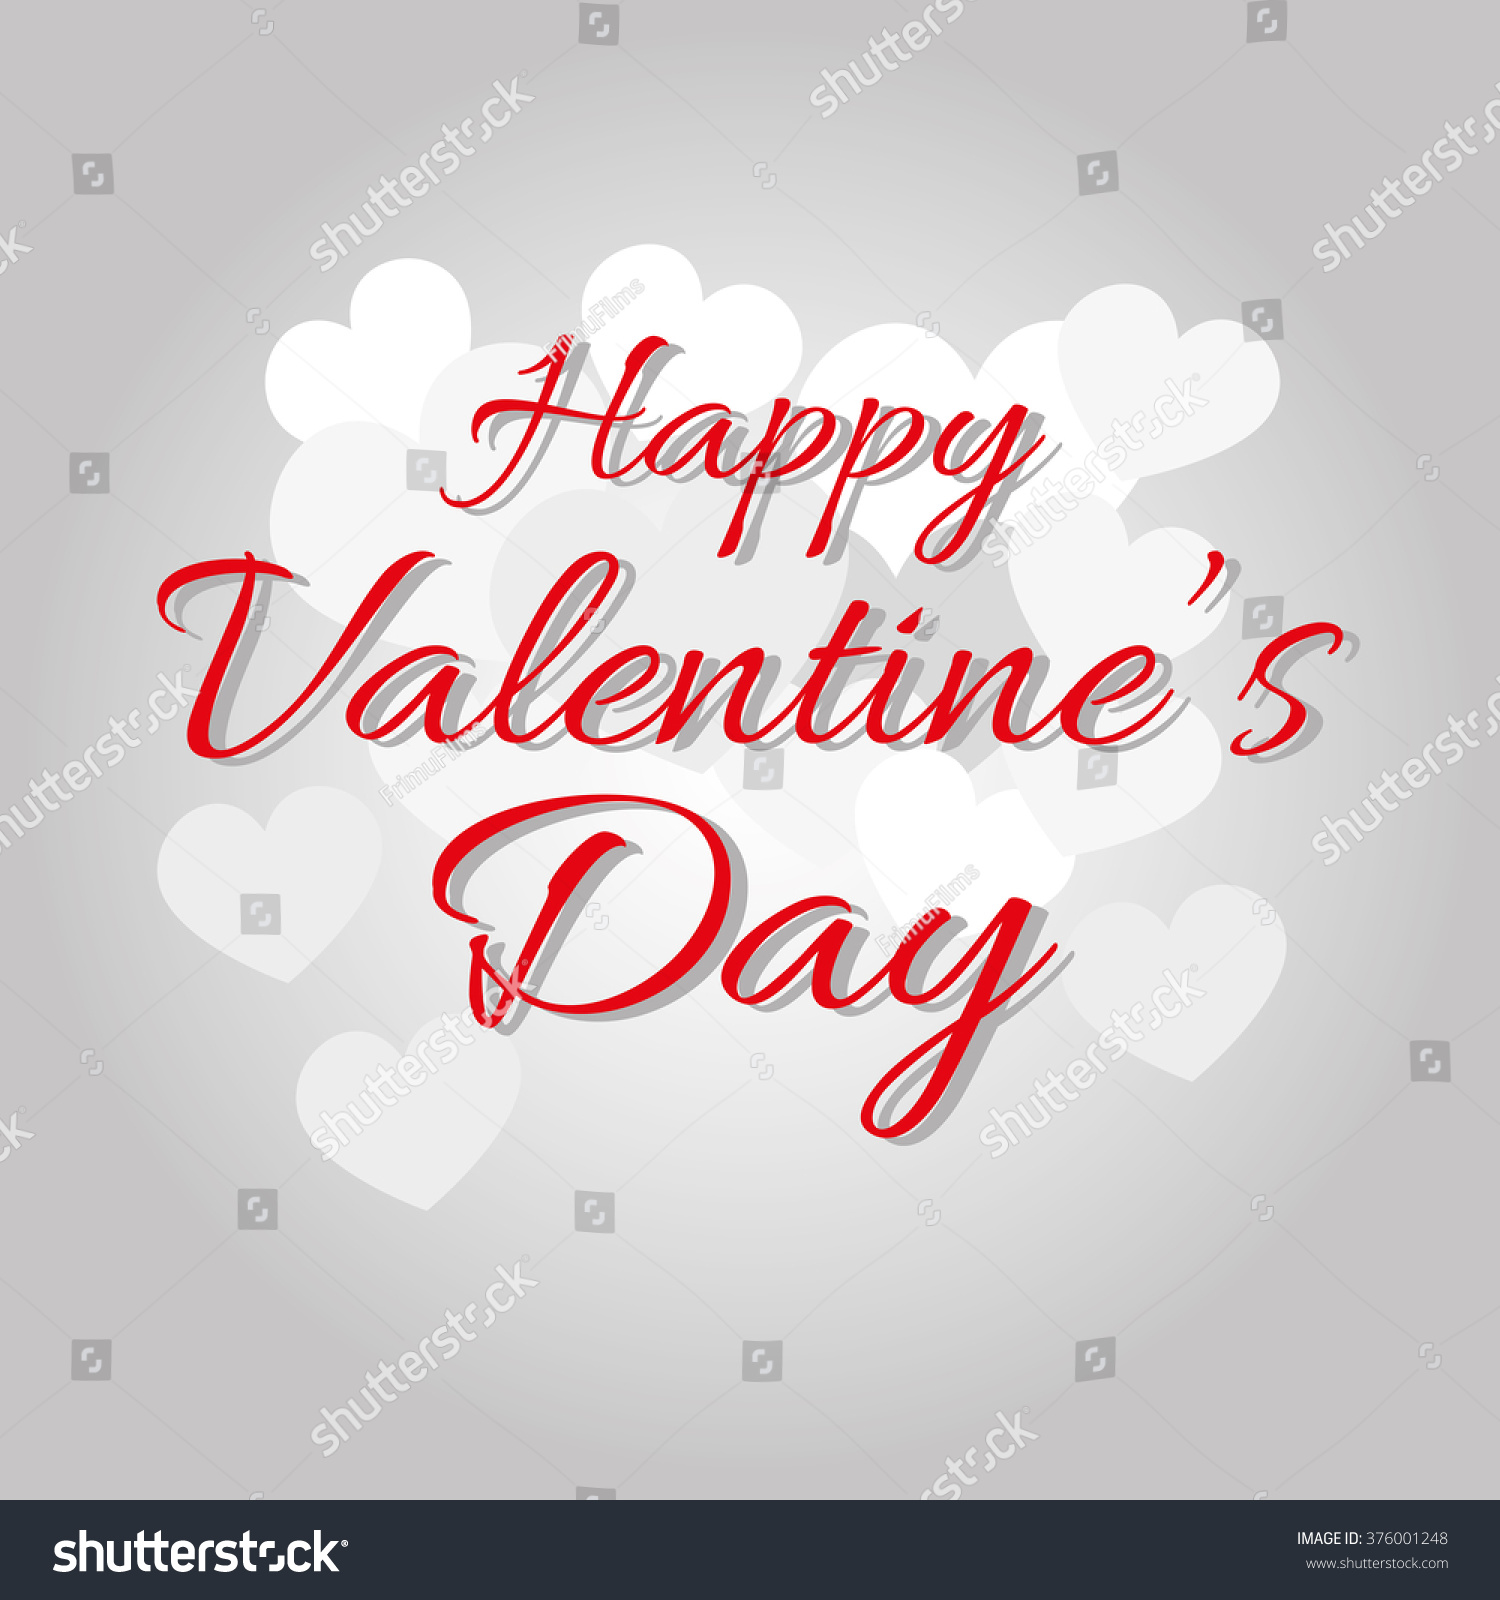 Happy Valentines Day Greeting Card Red Colored Greeting Text On A